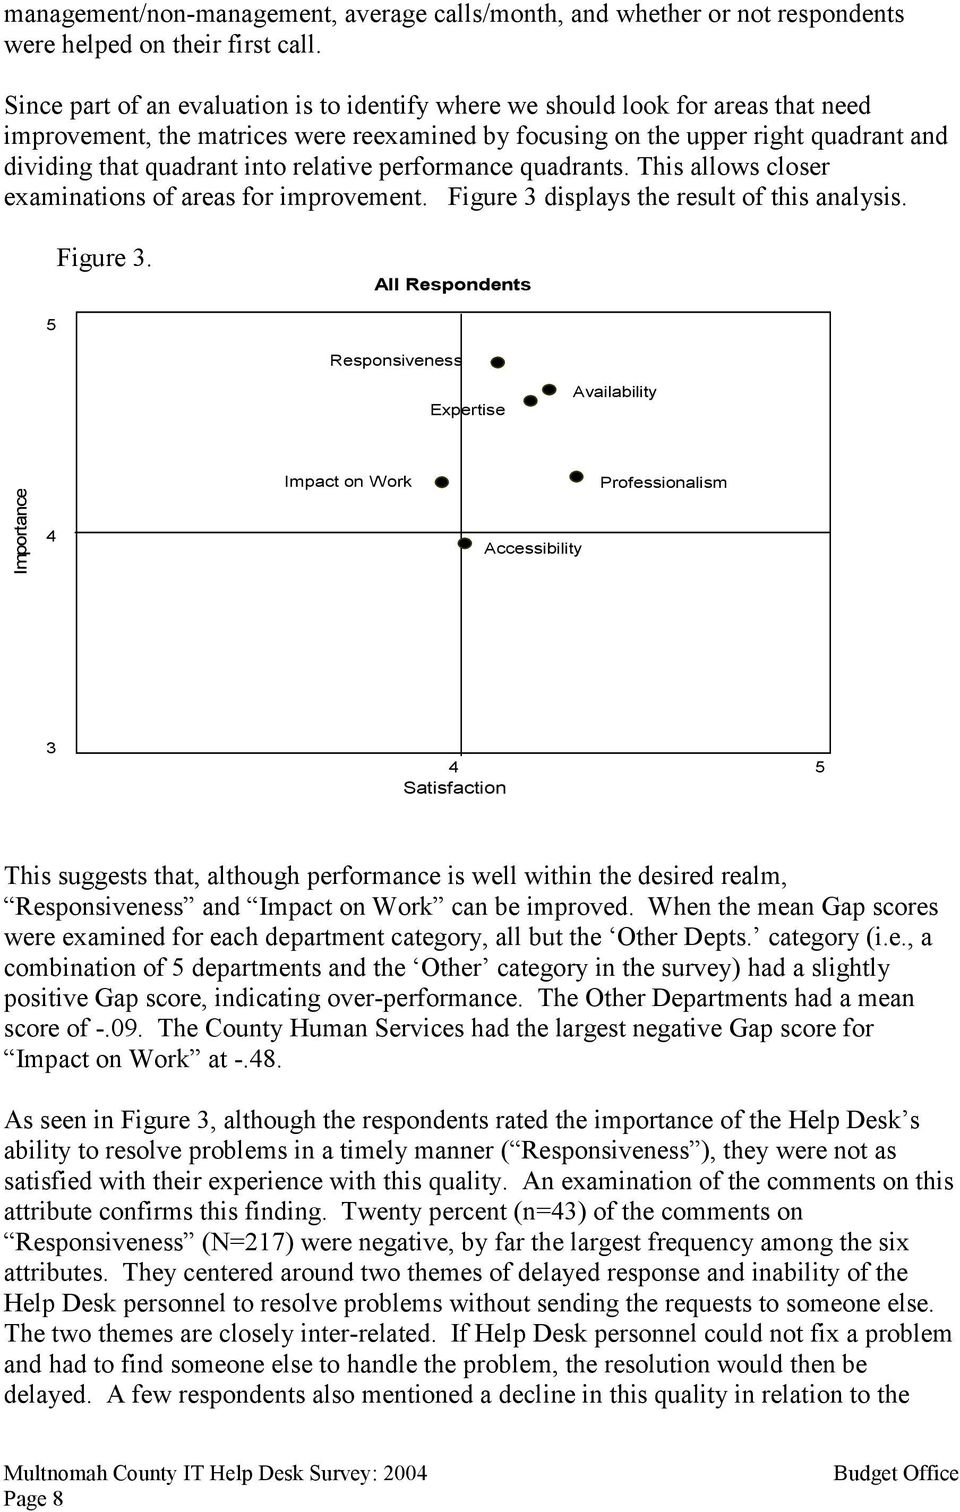 relative performance quadrants. This allows closer examinations of areas for improvement. Figure 3